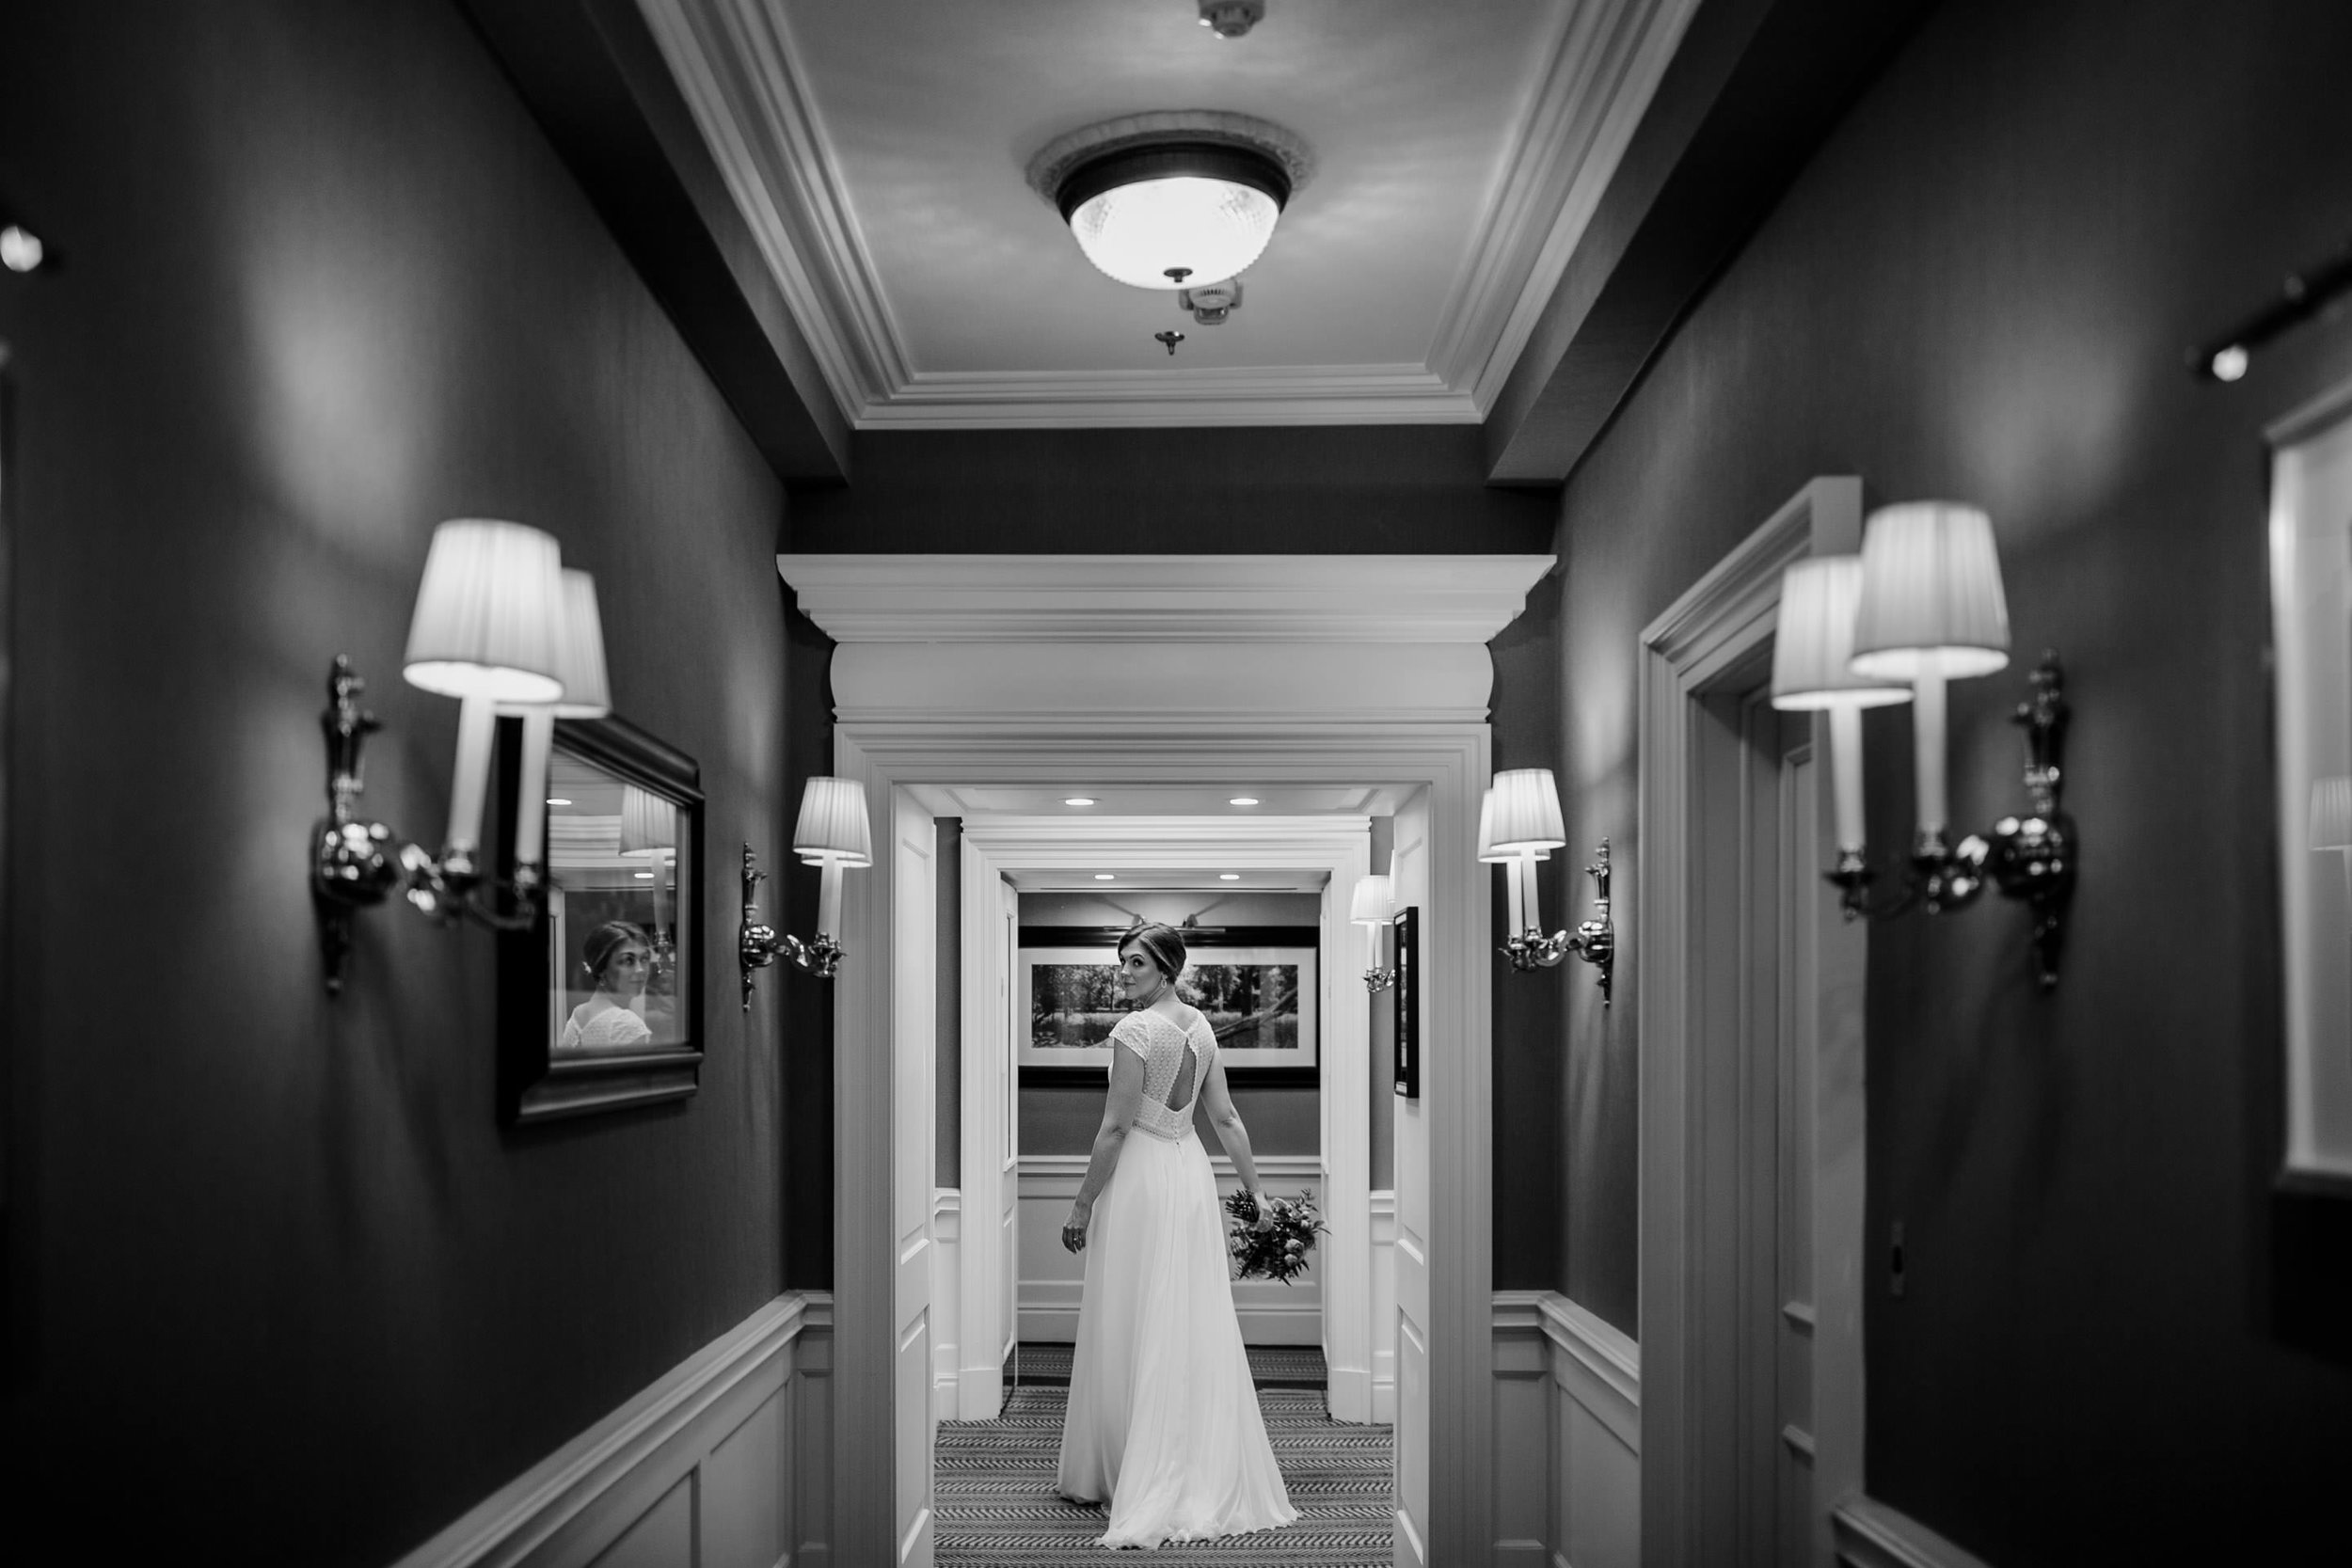 s&r_the_shelbourne_hotel_wedding_photographer_livia_figueiredo_3.jpg